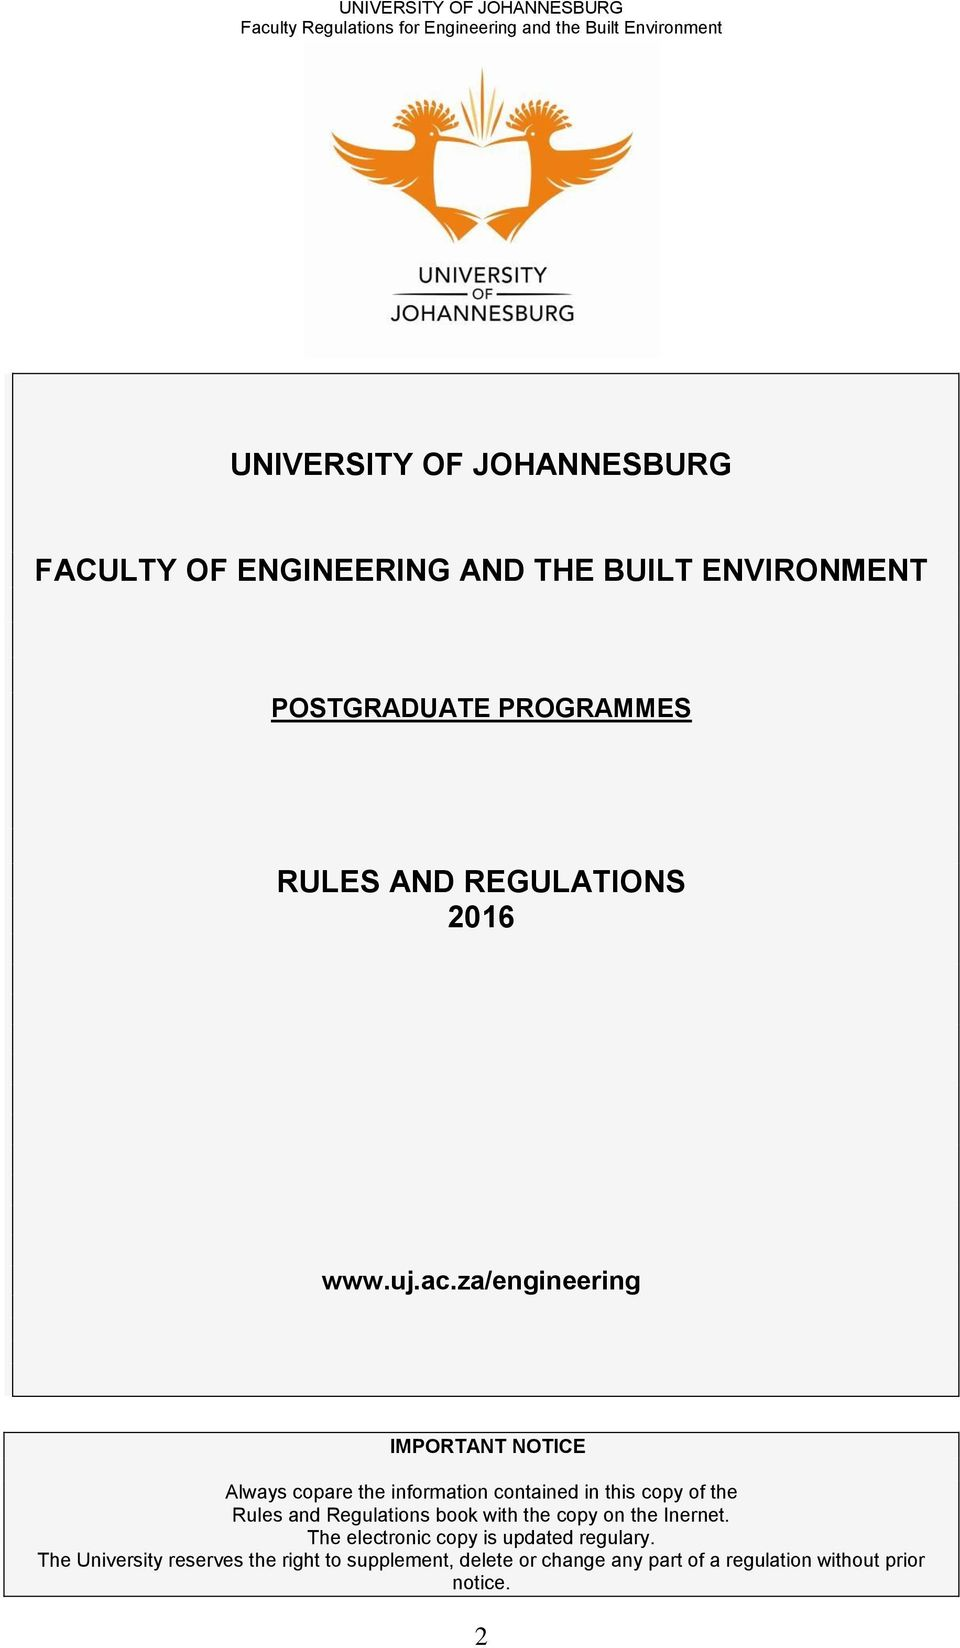 Uj 2014 tuition brochur ebook array university of johannesburg faculty of engineering and the built rh docplayer net fandeluxe Choice Image